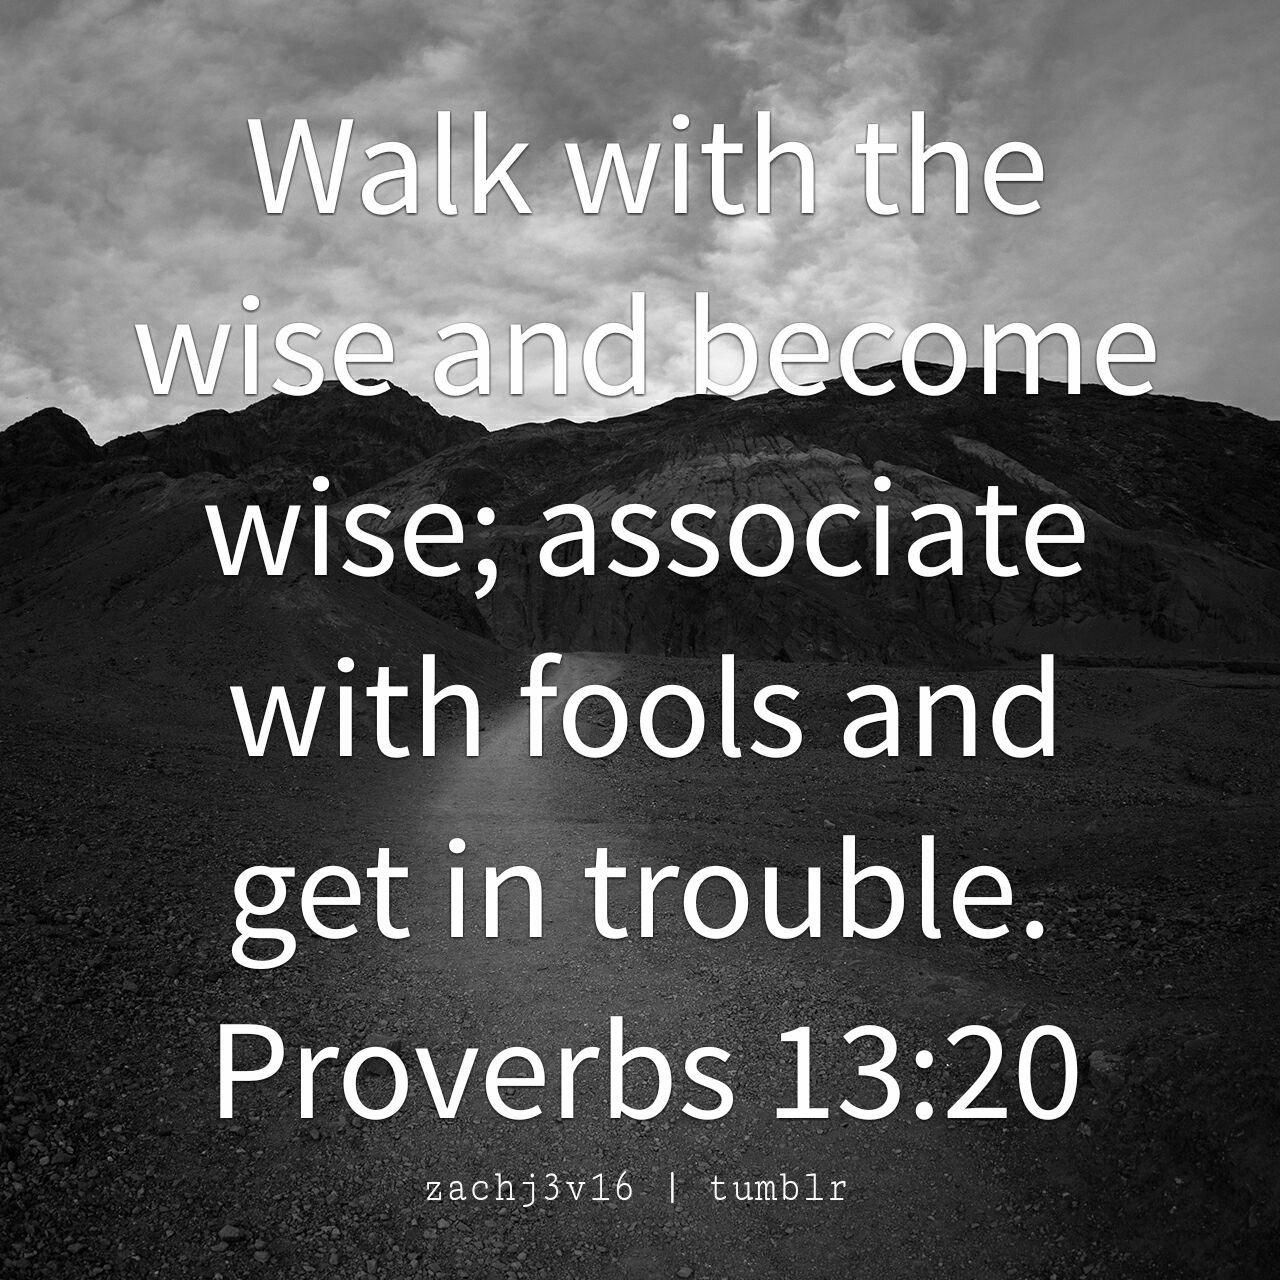 Bible Quotes Proverbs 13 20 Choose Your Friends Wisely The Motivationalquotesbible Proverbs Bible Quotes Proverbs Quotes Wisdom Bible